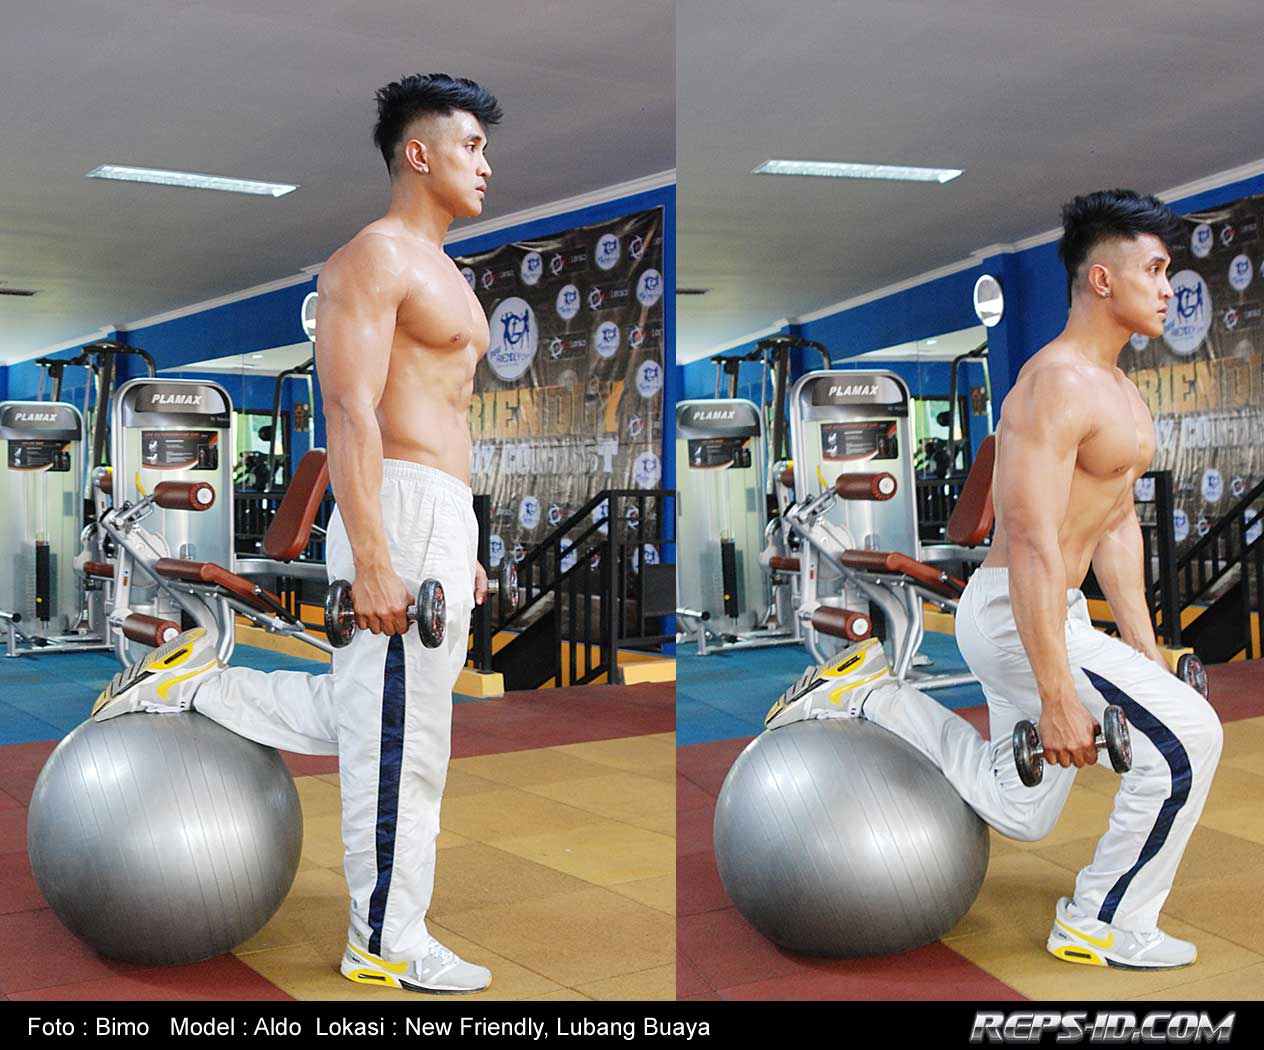 1.stationary-lunges